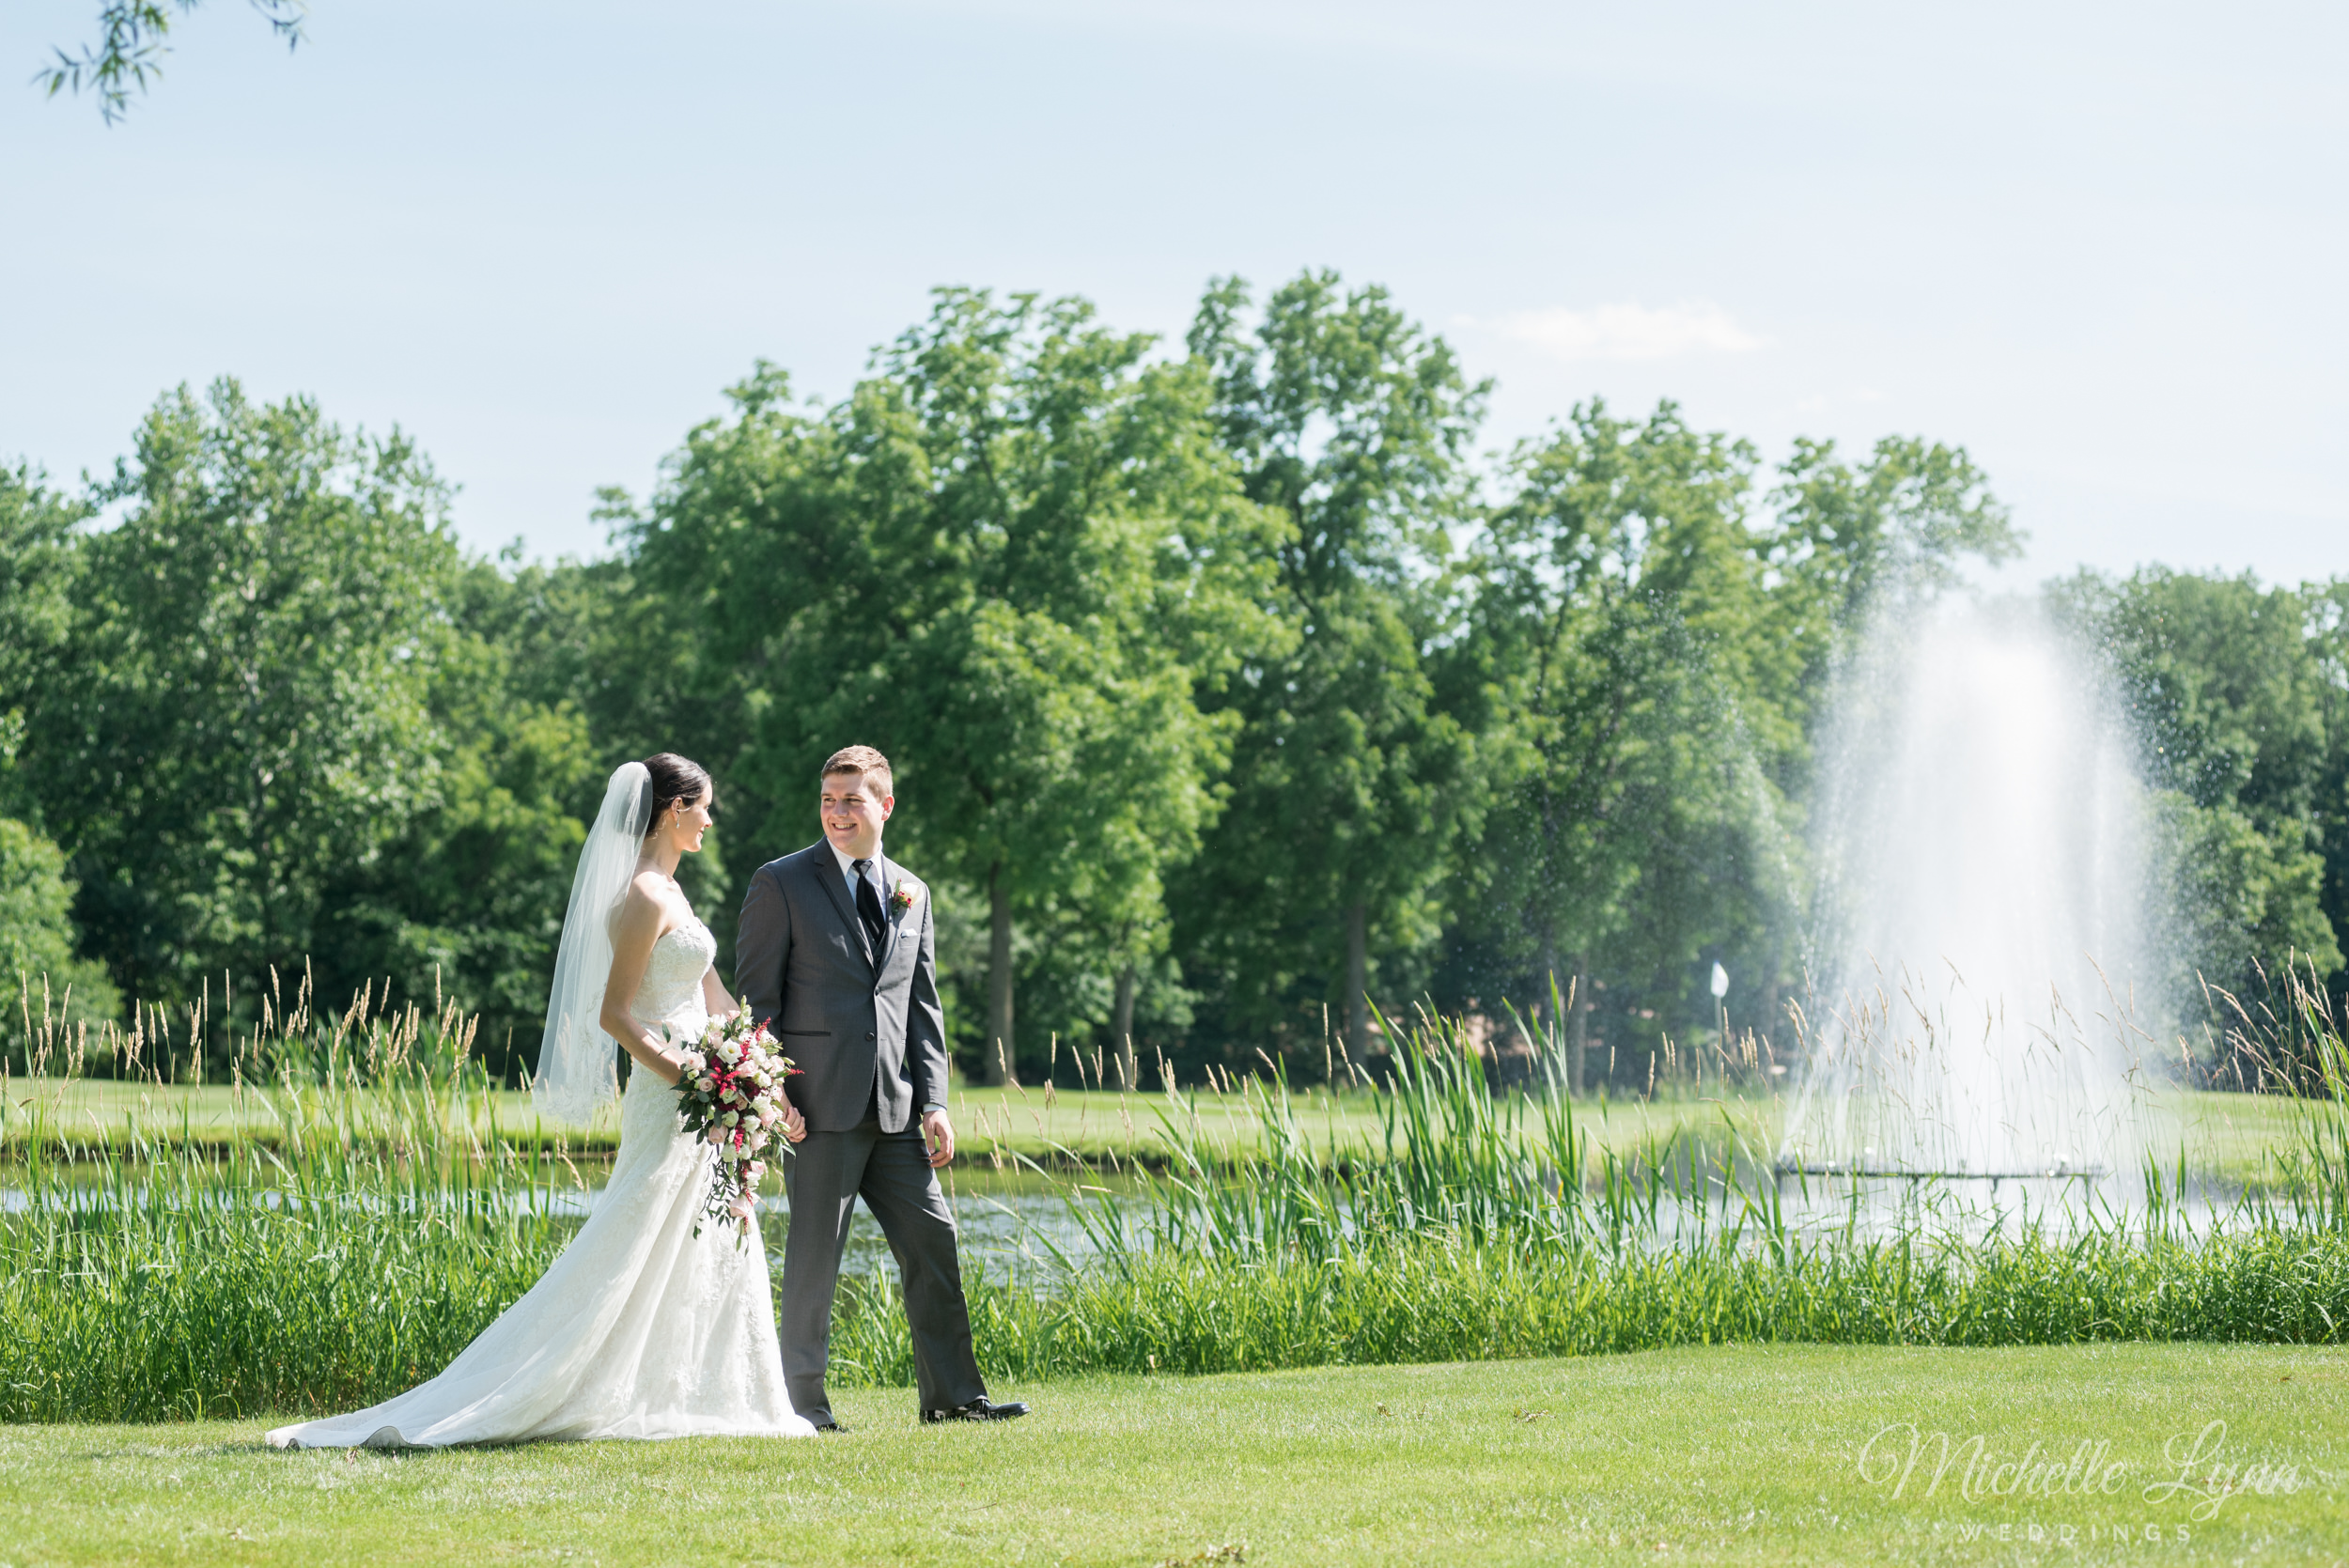 mlw-loft-at-sweet-water-country-club-wedding-photography-21.jpg